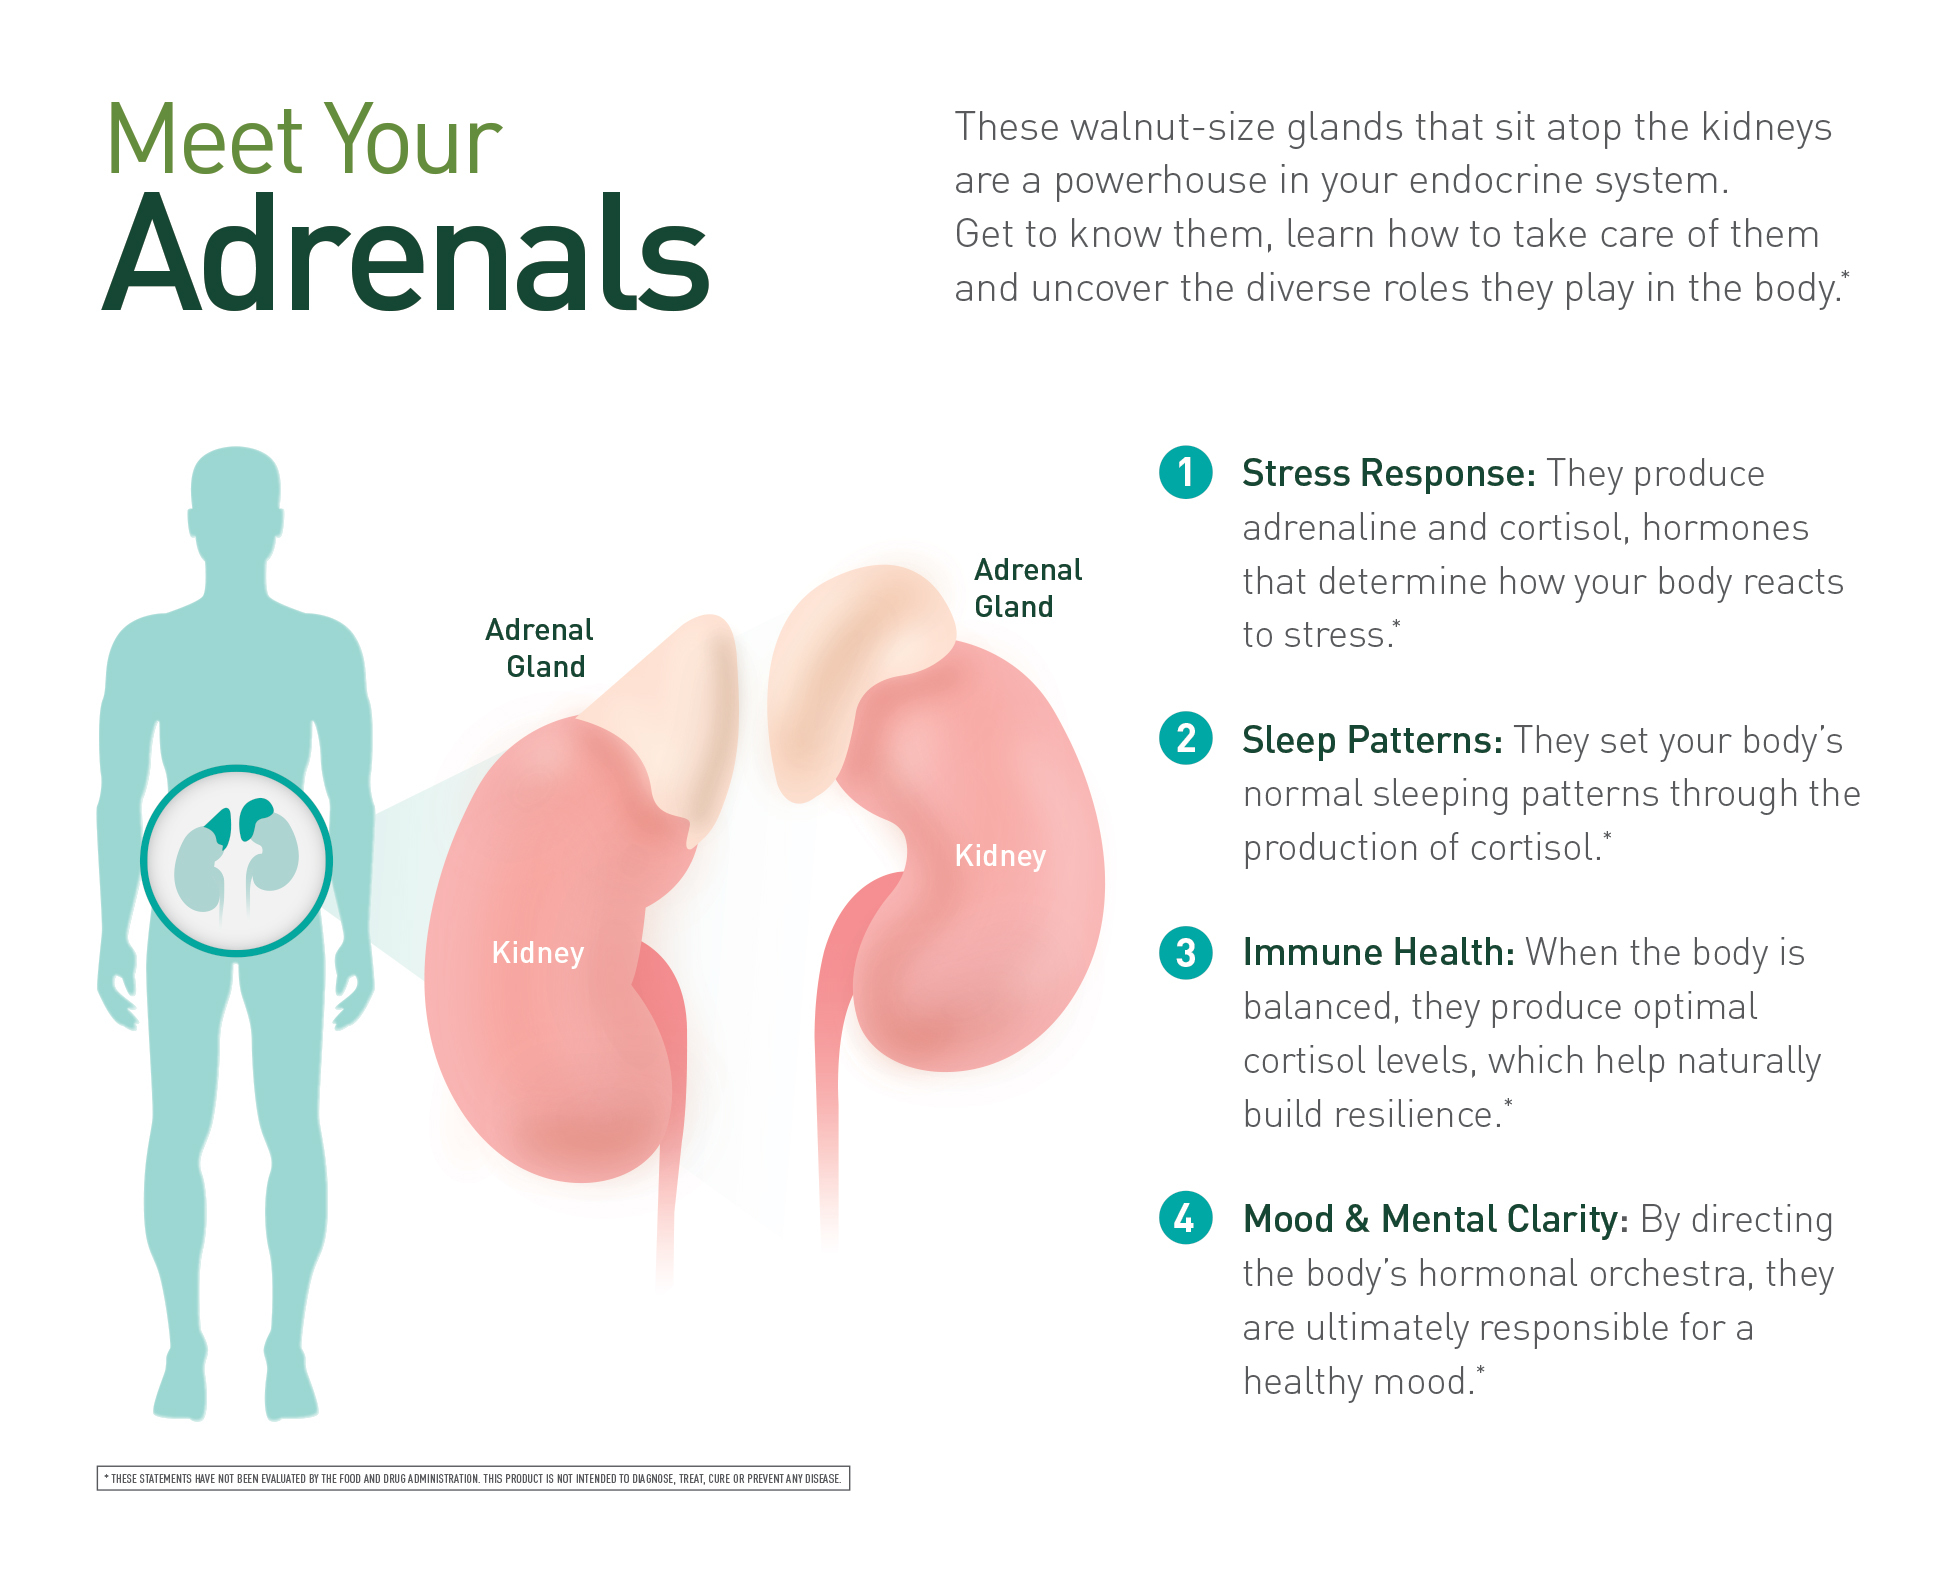 Adrenals.jpg - 578.56 kB